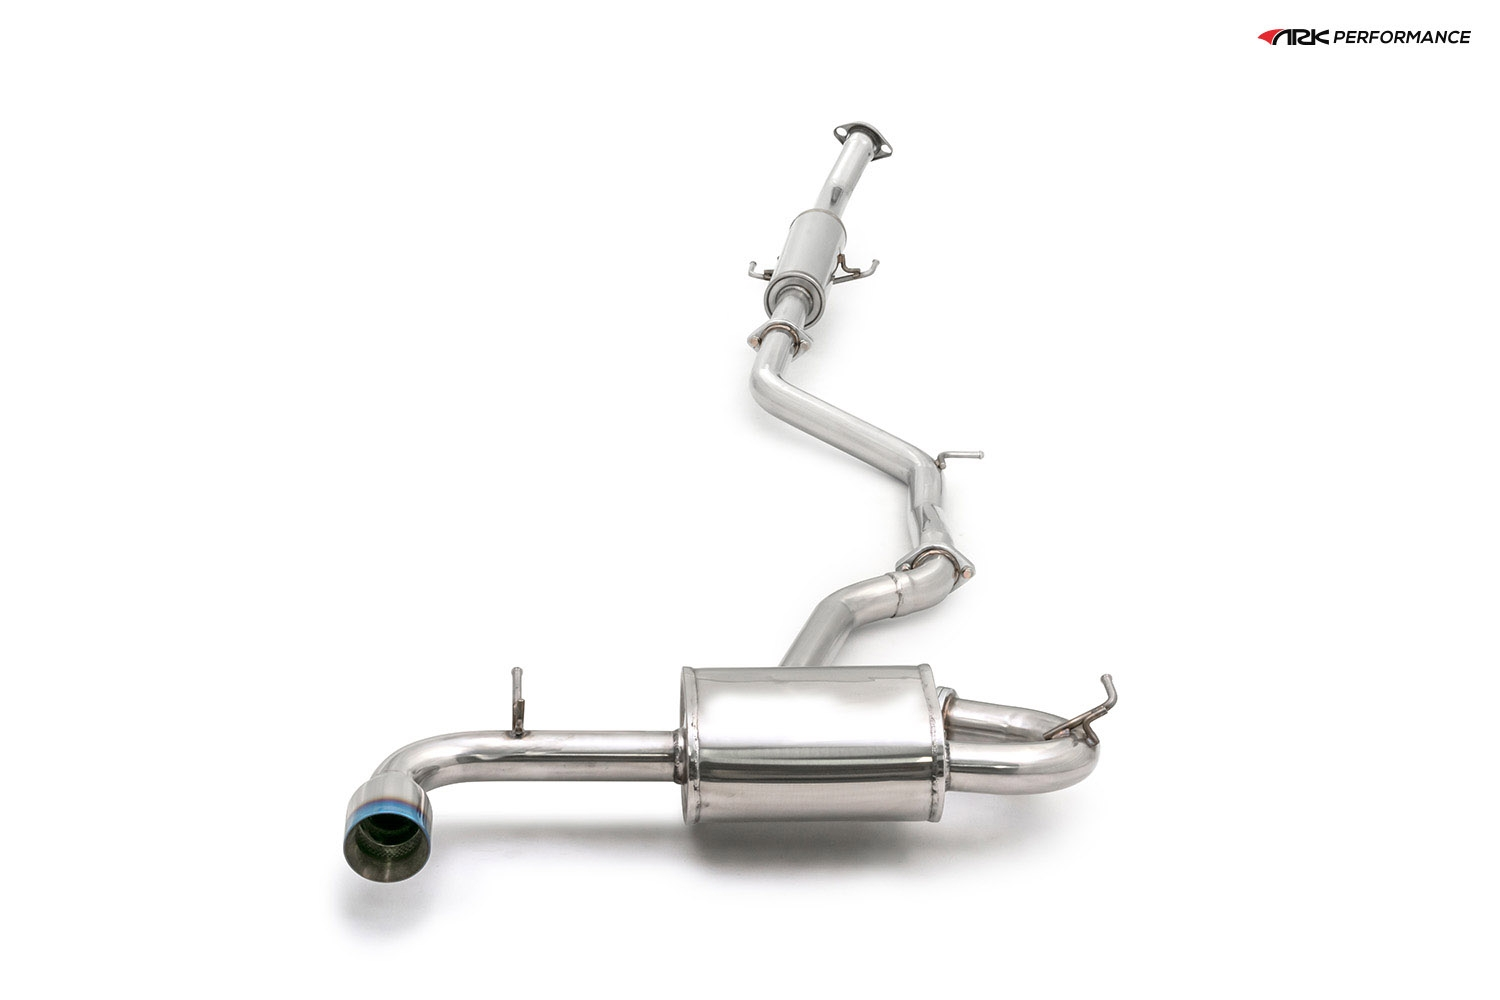 Ark Performance Stainless Steel DT-S Cat-Back Exhaust System 2.5in Pipe w/ 4.0 Burnt Single Tip, Single Exit - Scion tC 10-13 2.5L I4 AGT20L